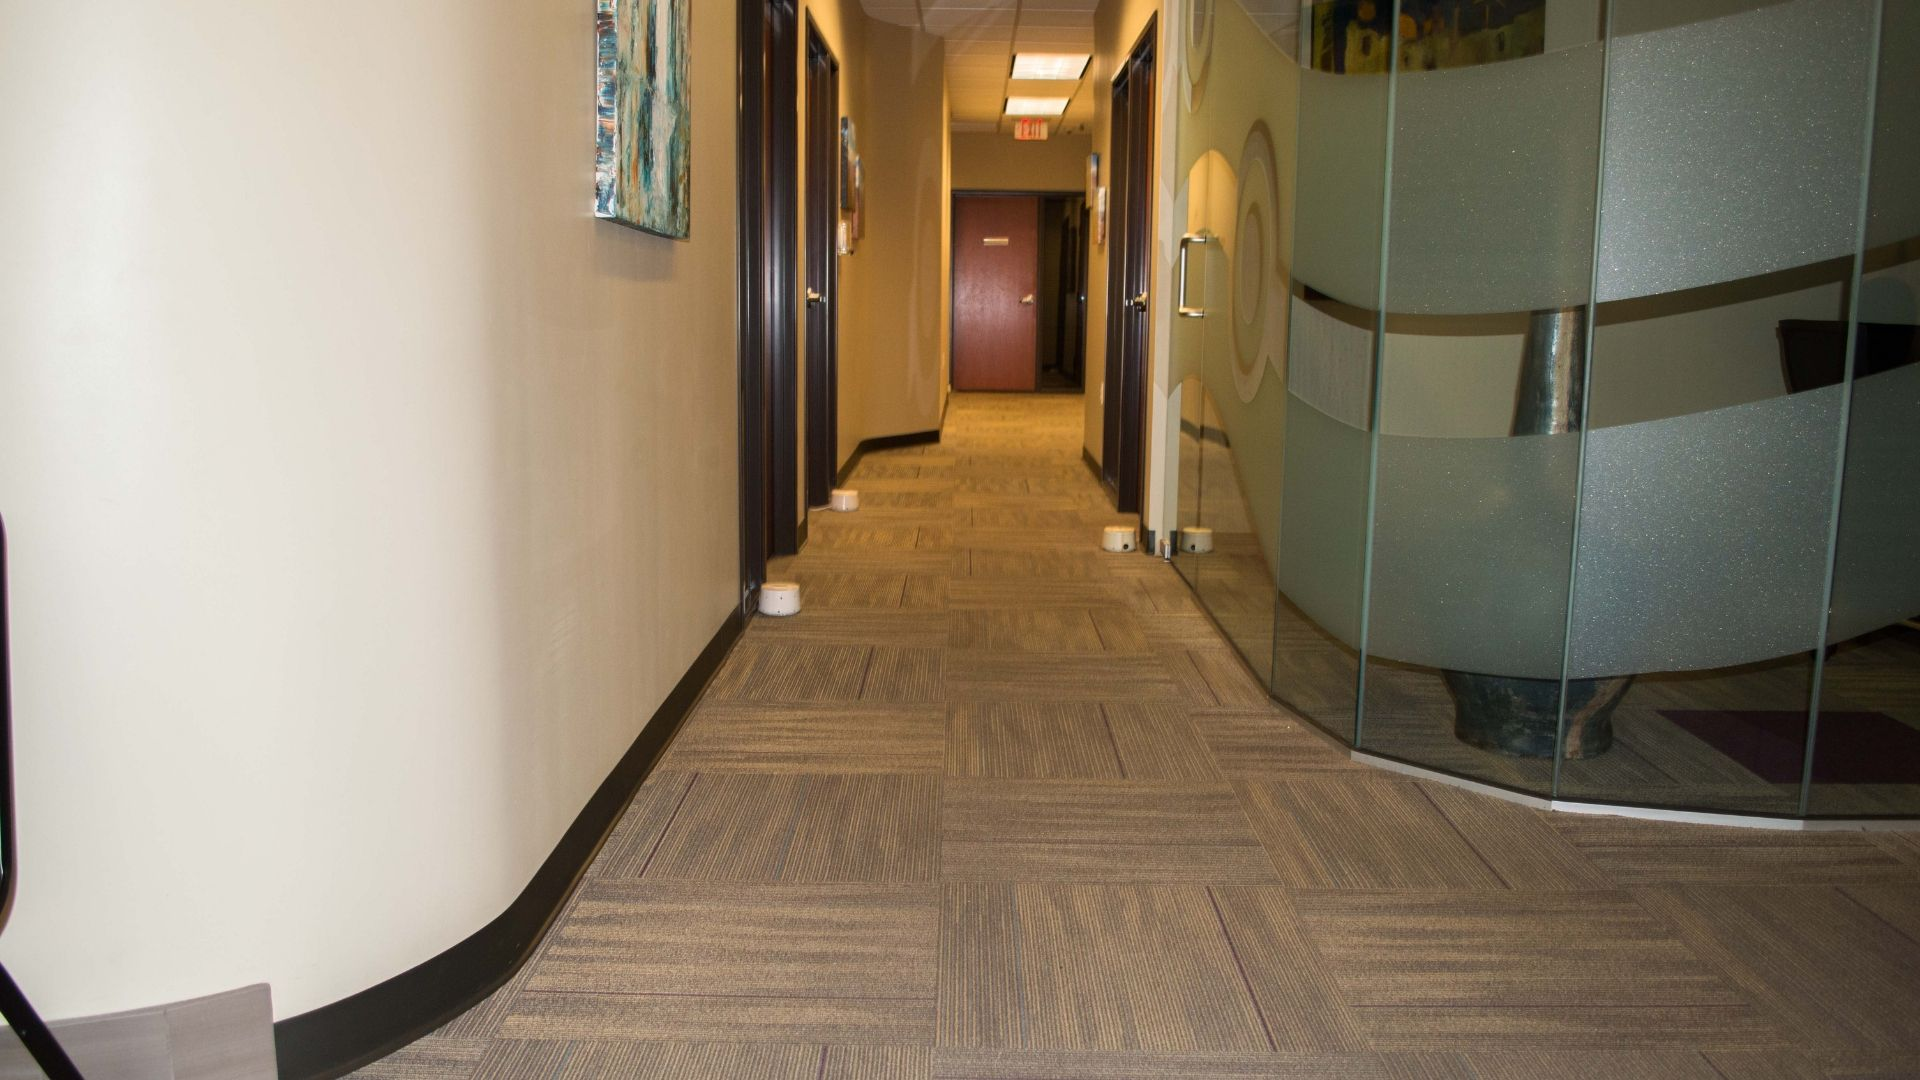 Scottsdale Law Firm - Hallway to Main Office - The Arizona-Law-Doctor